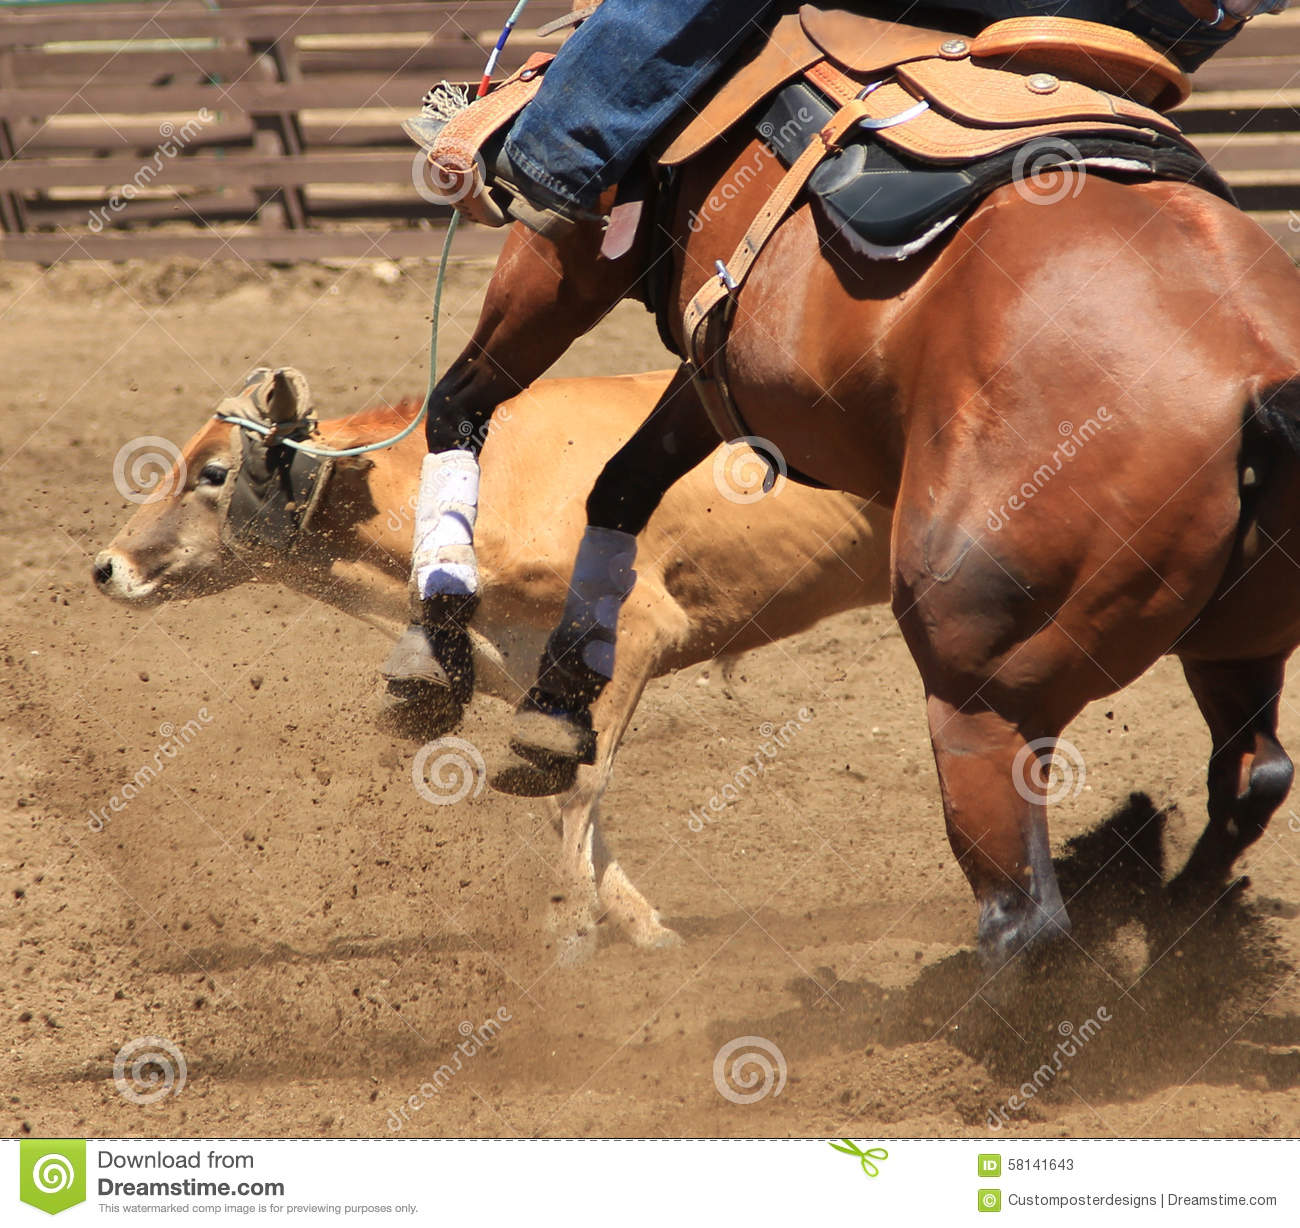 Download A Rodeo Horse Roping A Cow. Stock Image - Image of close, animal: 58141643